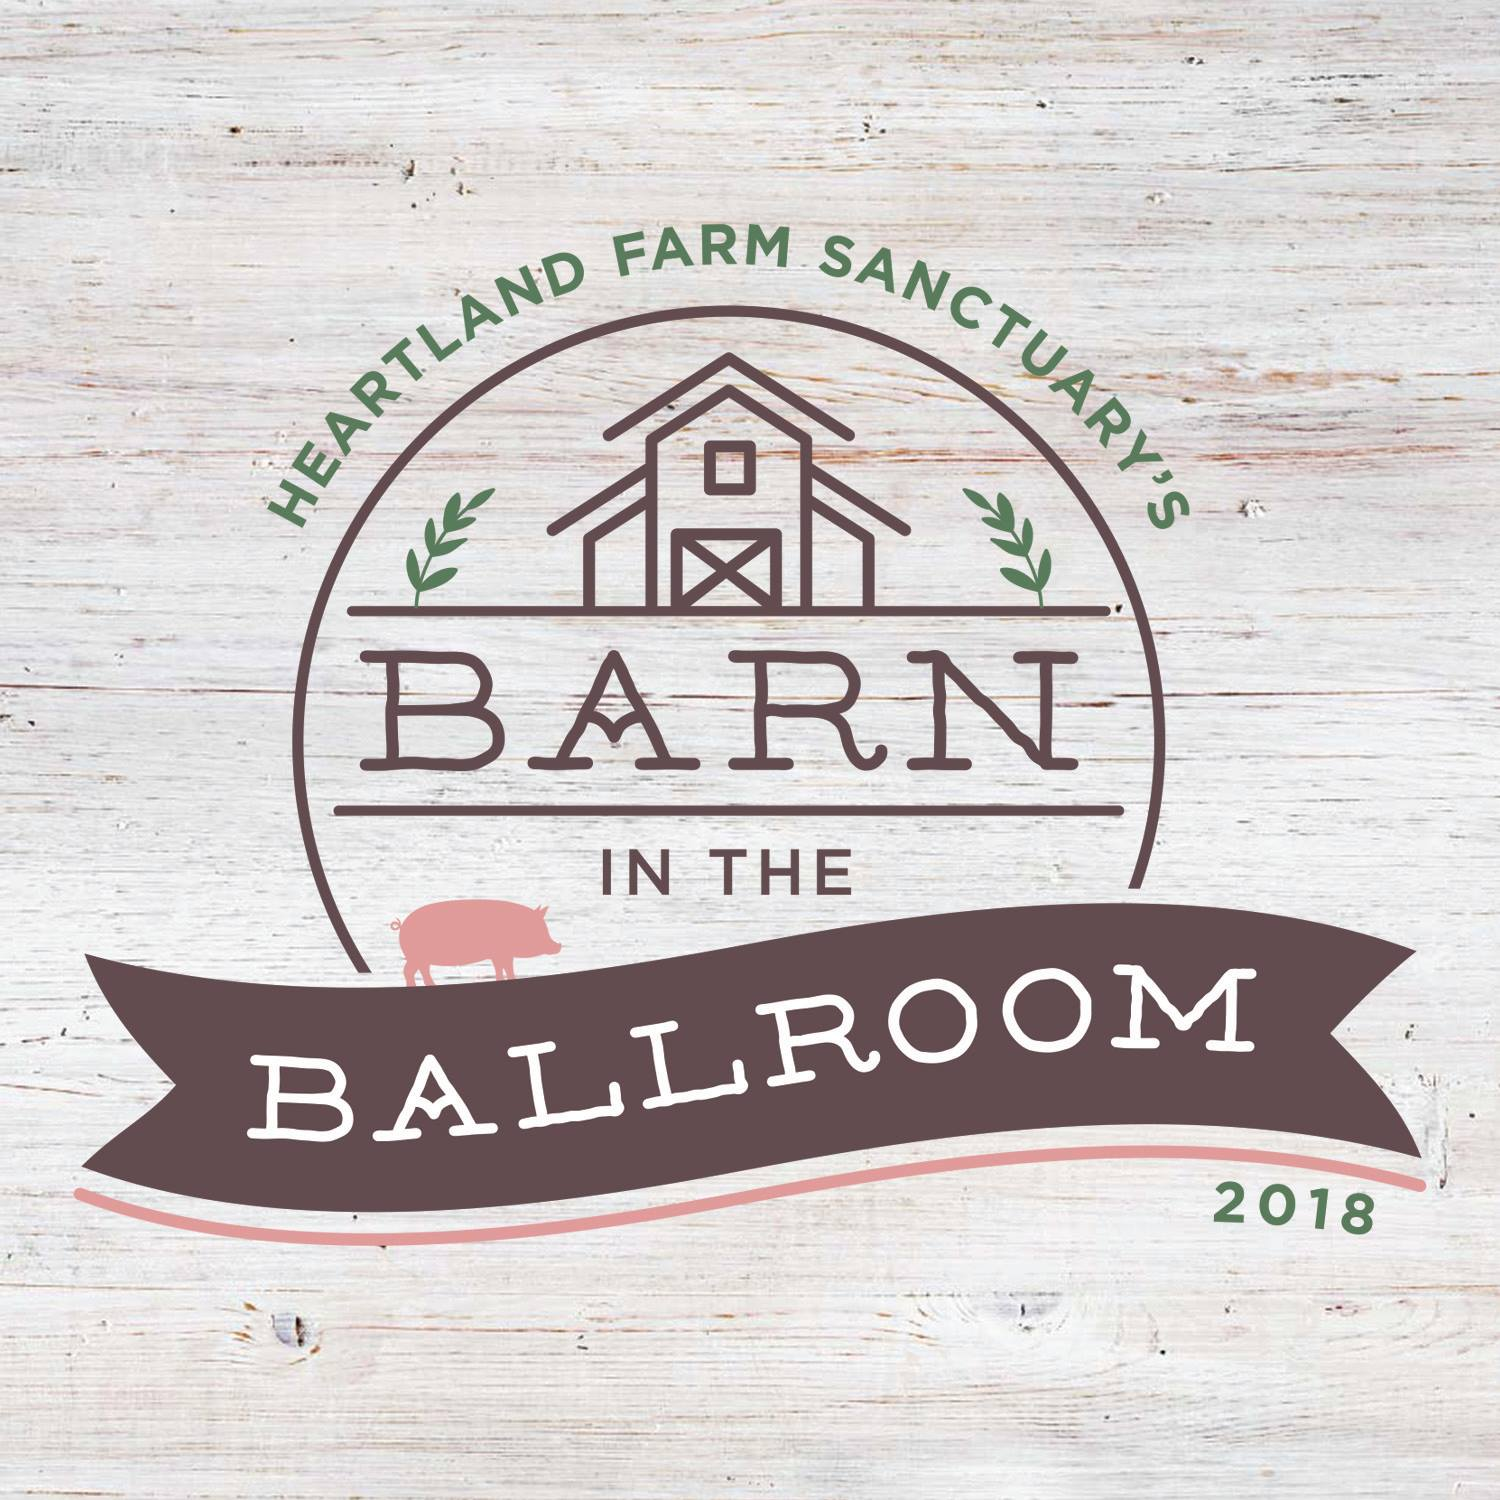 Barn In The Ballroom - 2018